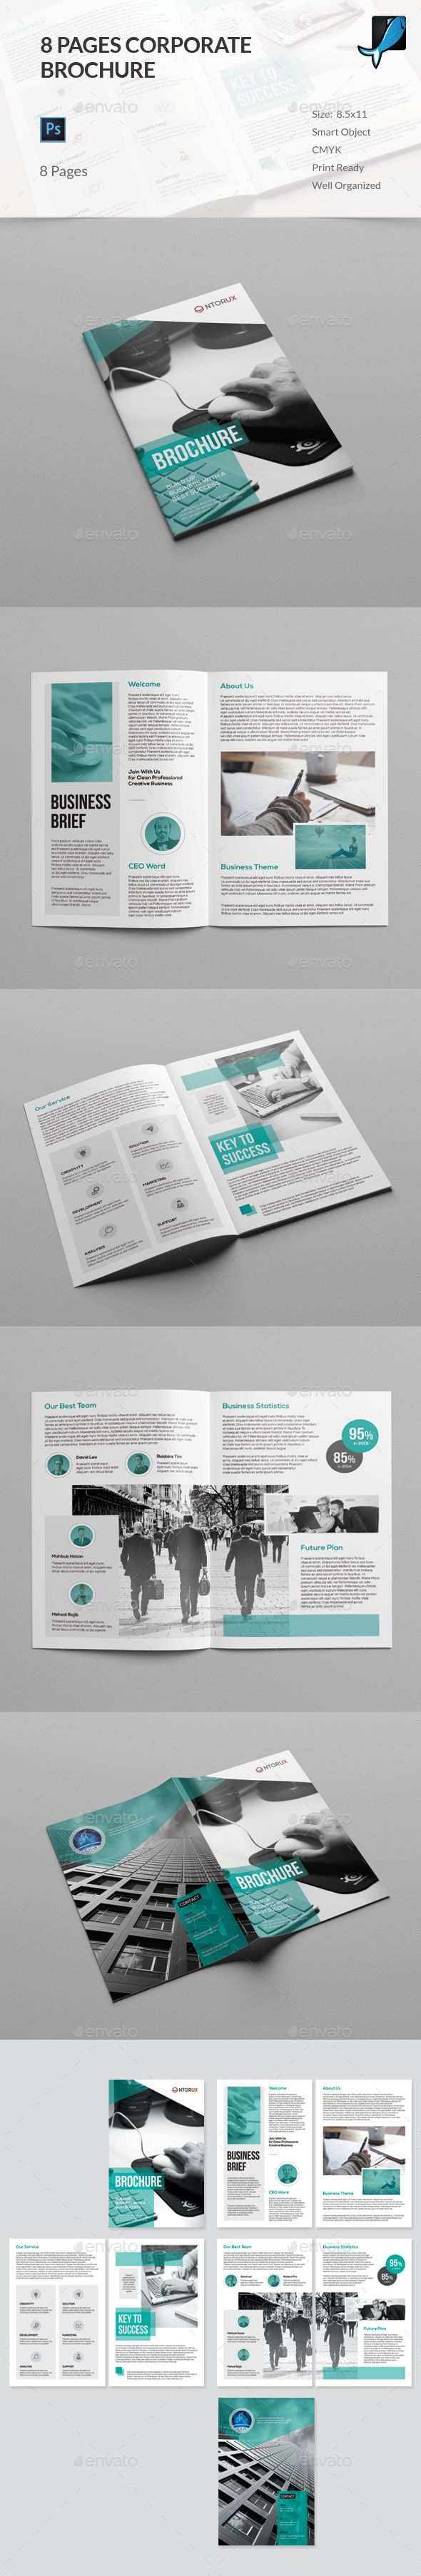 Page Brochure Brochure Template Brochures And Template - 8 page brochure template